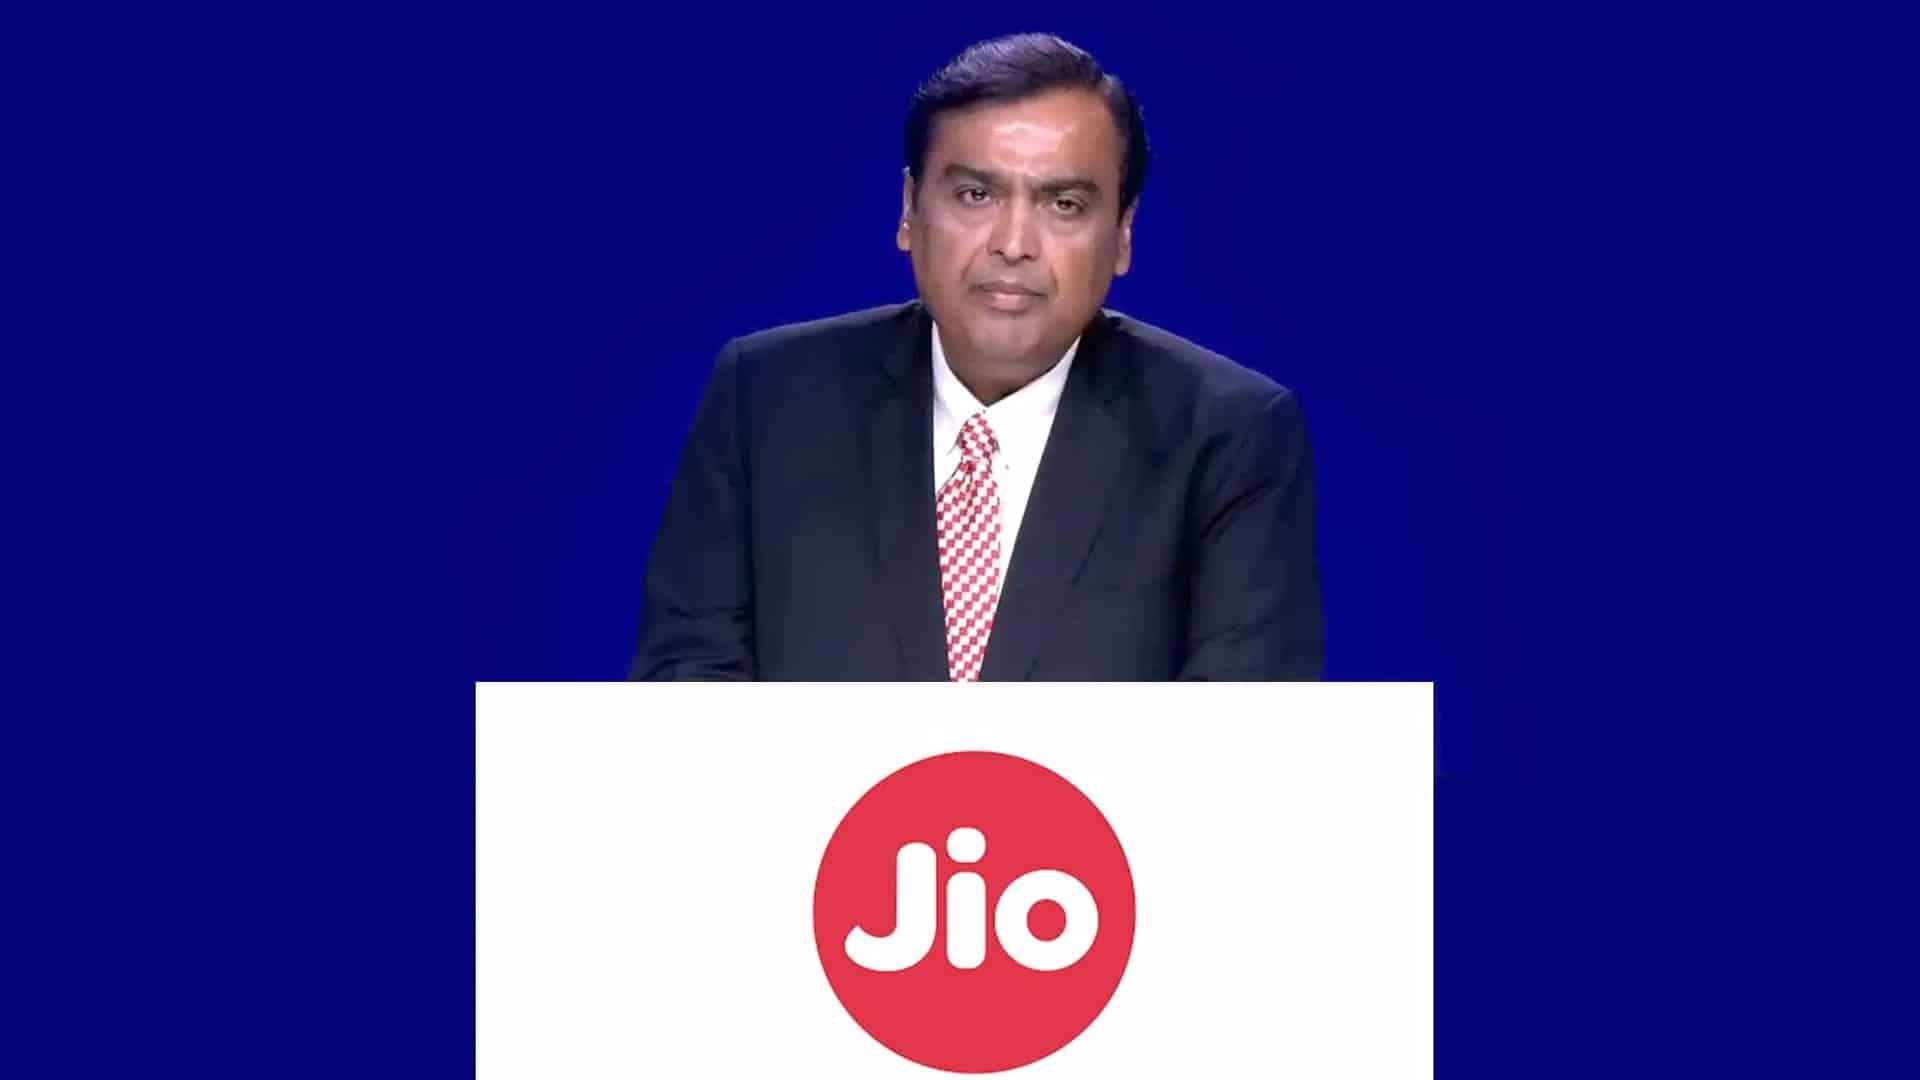 Jio accelerating rollout of digital platforms, indigenously-developed 5G stack: RIL annual report